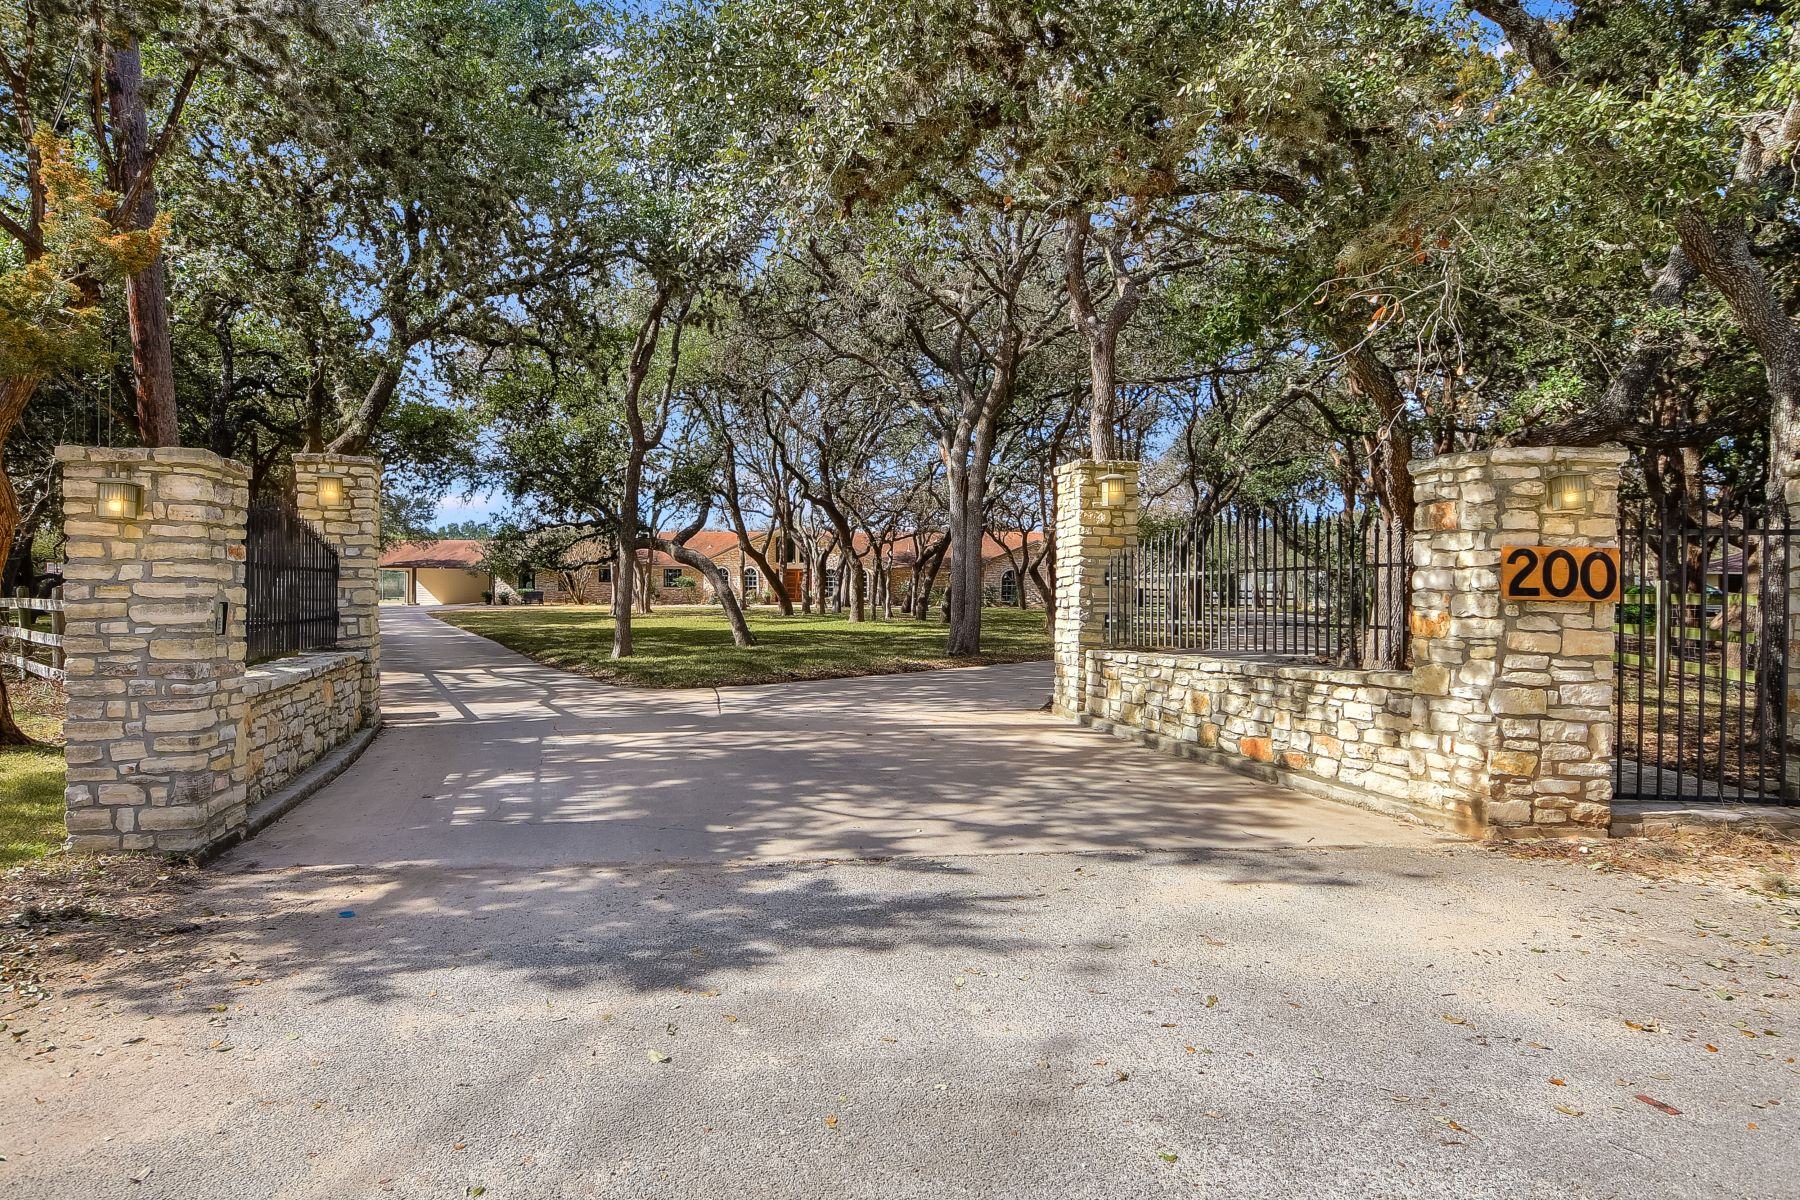 Single Family Home for Sale at Spacious Ranch in Hill Country Village 200 Village Circle San Antonio, Texas 78232 United States